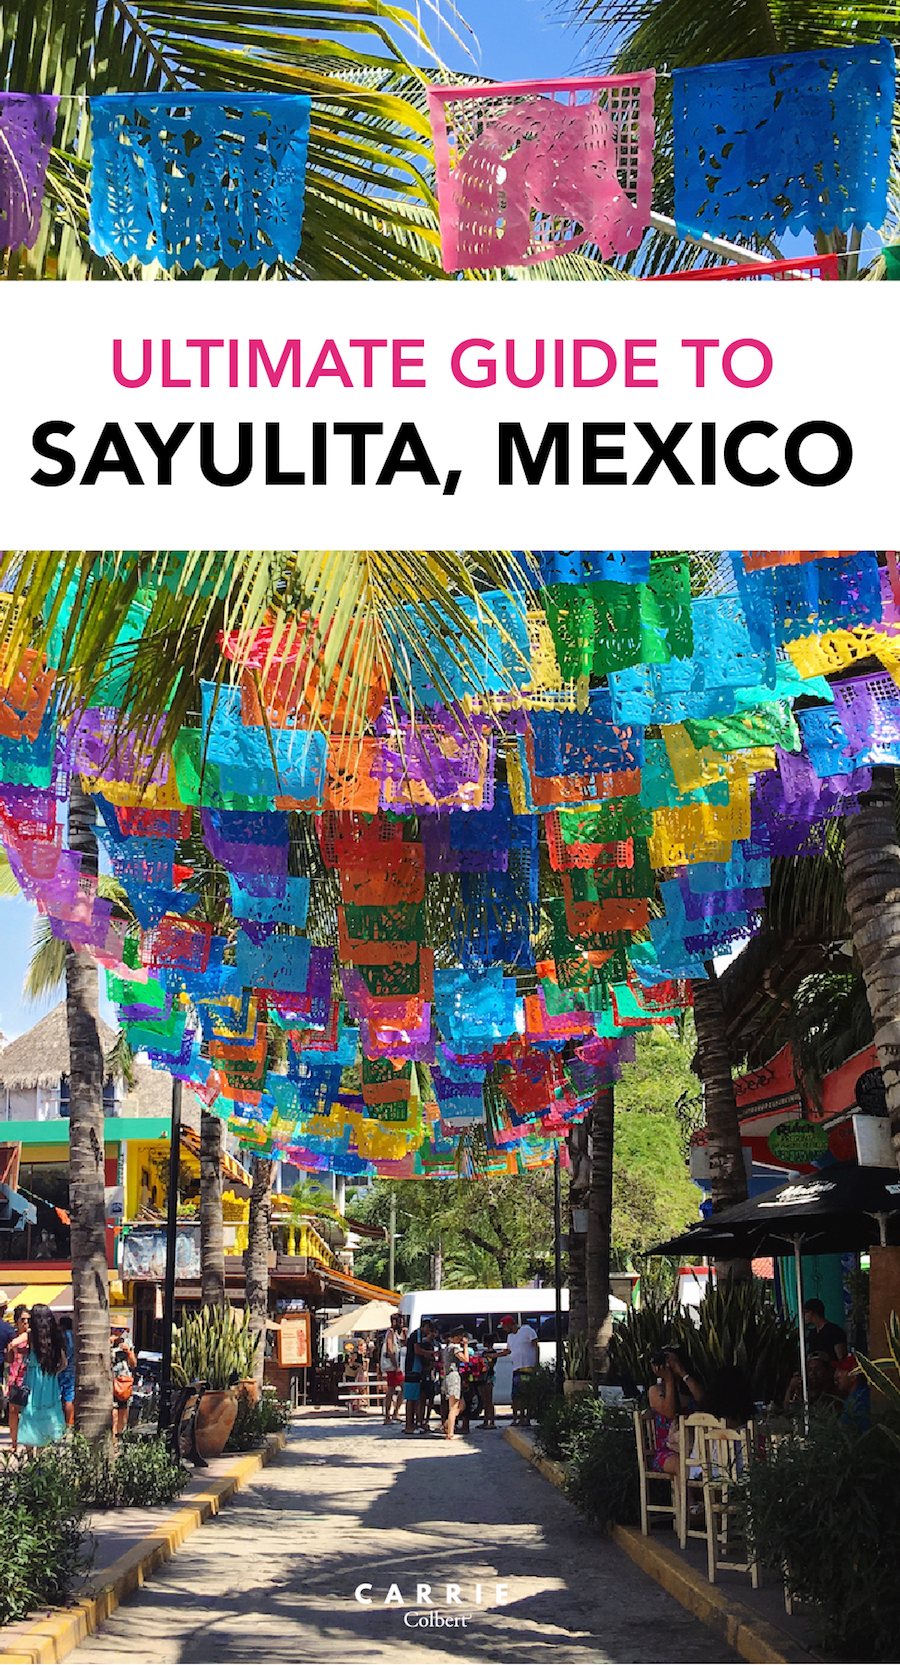 Vallarta Nayarit Mexico Sayulita The Ultimate Guide To A Weekend In Sayulita Mexico Carrie Colbert